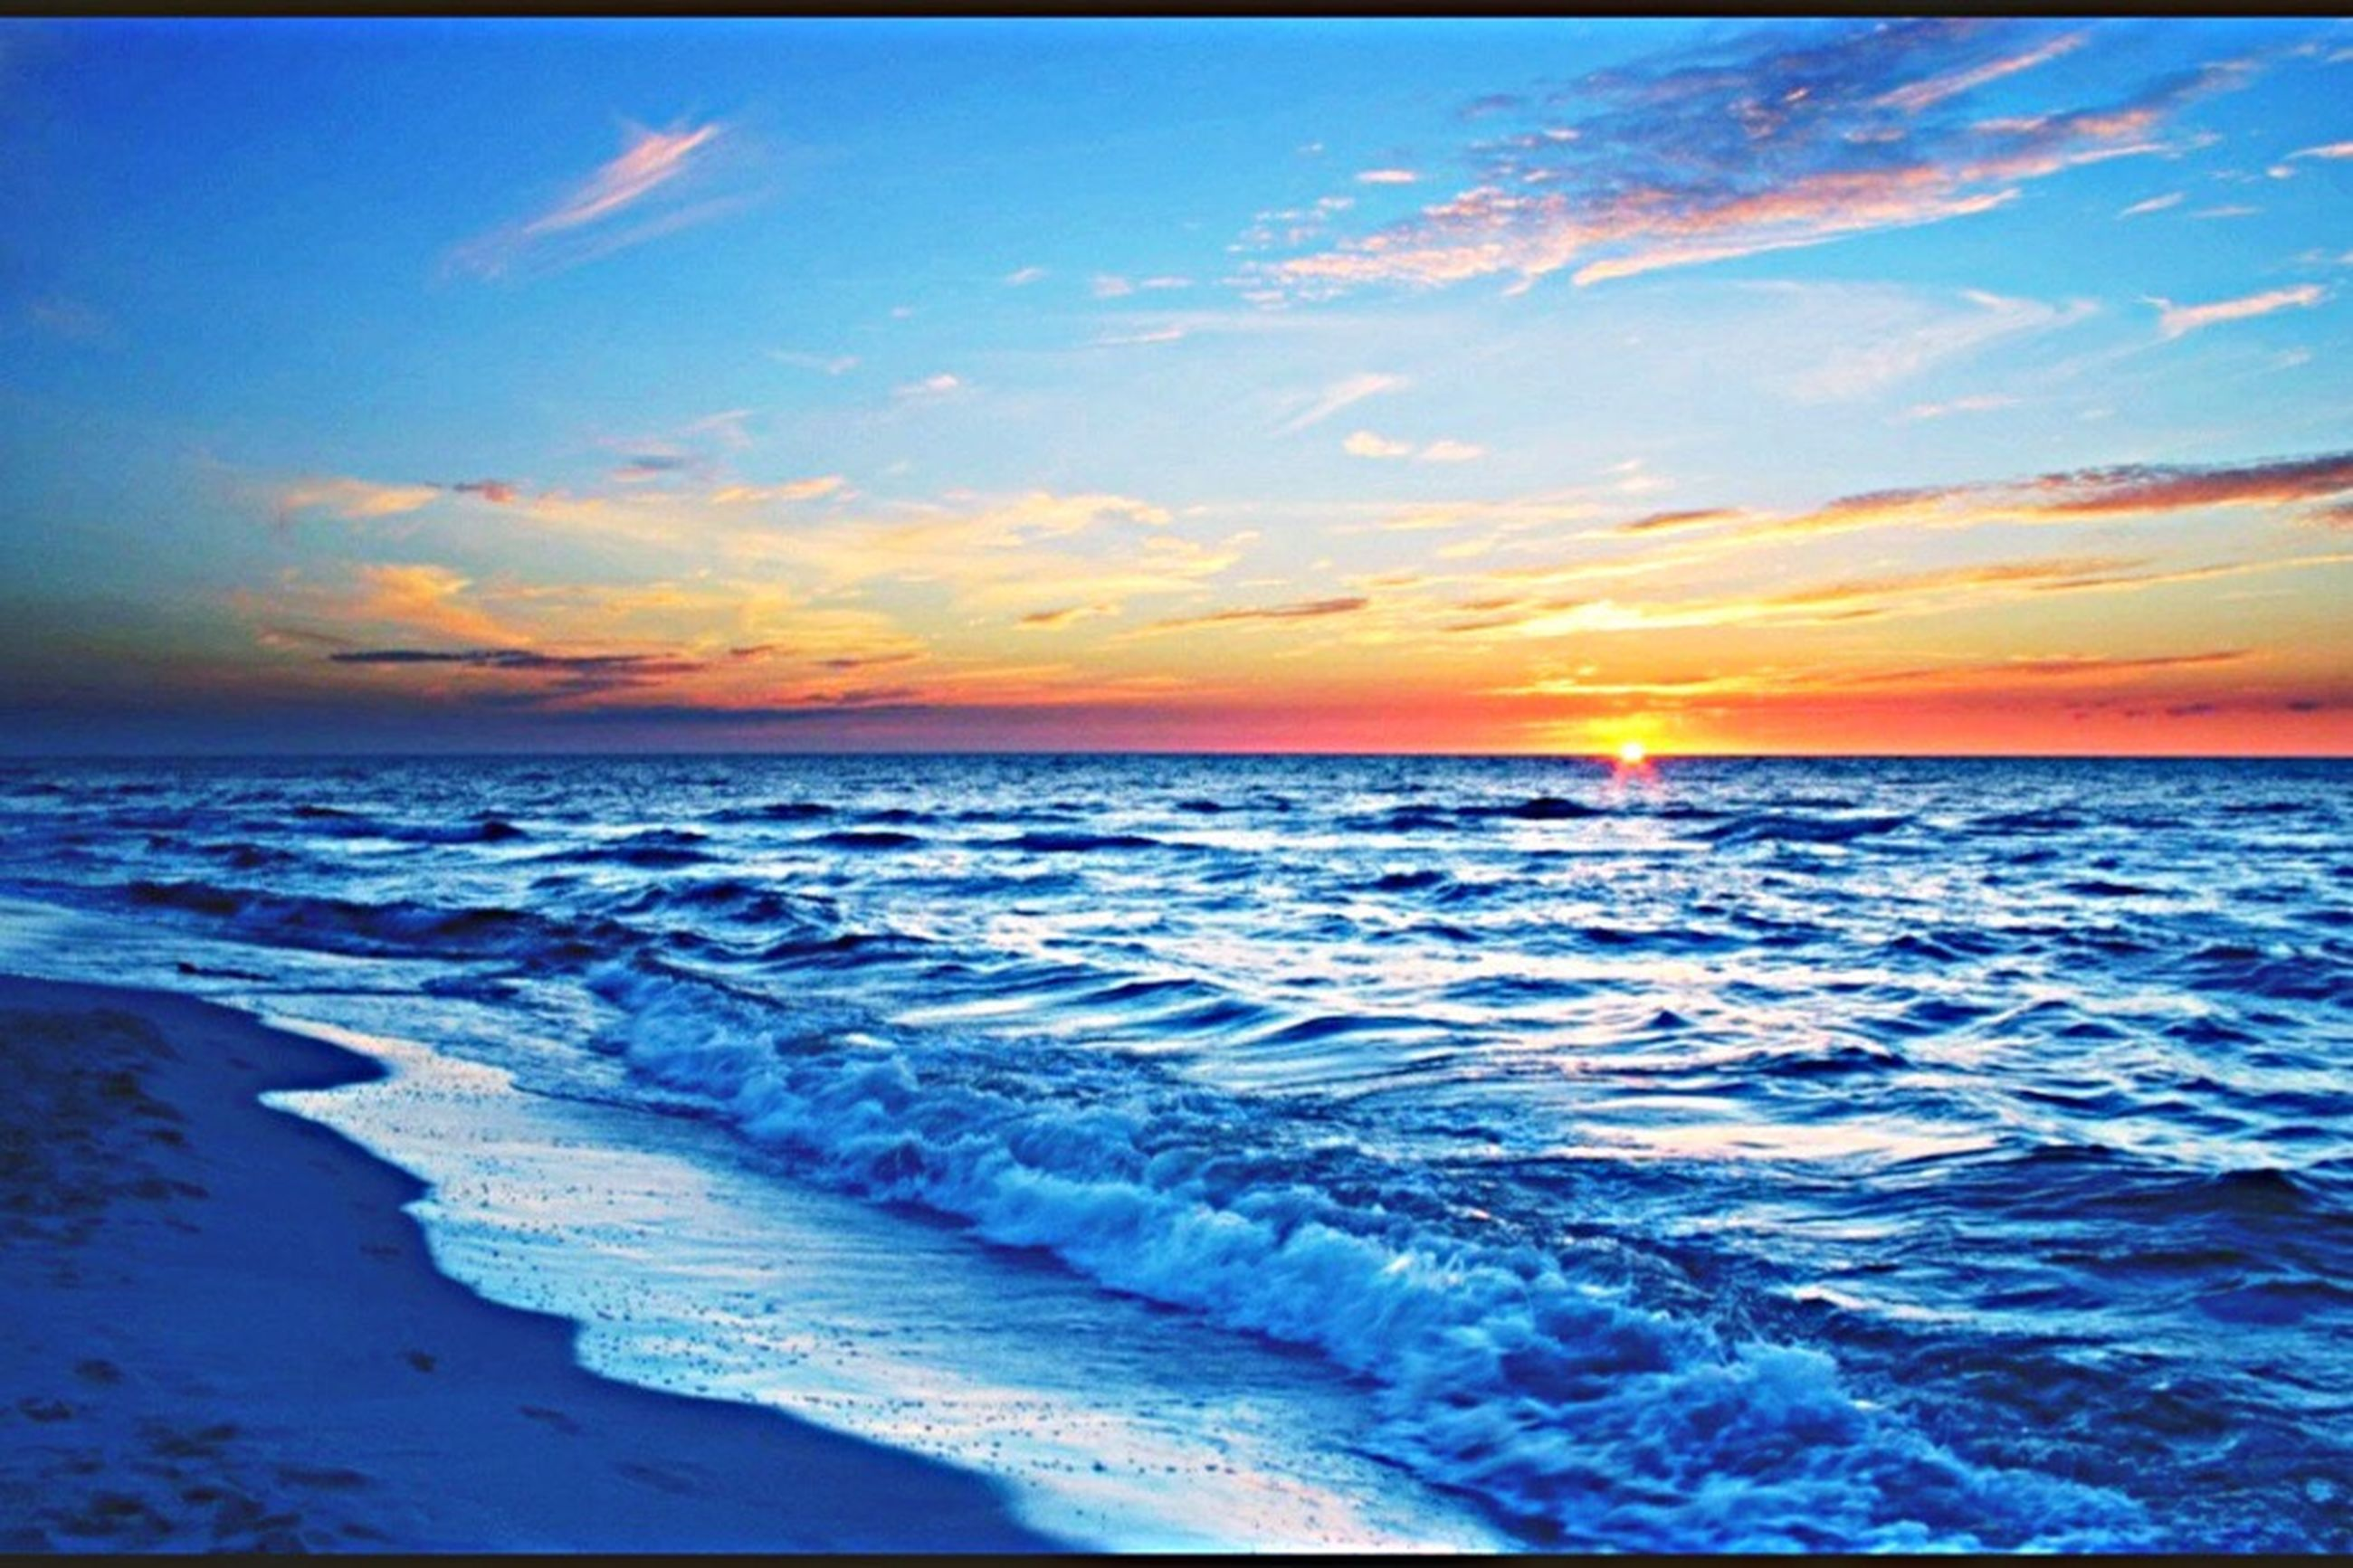 sea, sunset, scenics, horizon over water, water, tranquil scene, tranquility, beauty in nature, beach, sky, cloud, idyllic, blue, dusk, nature, shore, calm, wave, sun, seascape, majestic, cloud - sky, ocean, vacations, coastline, outdoors, non-urban scene, summer, moody sky, remote, tourism, no people, tide